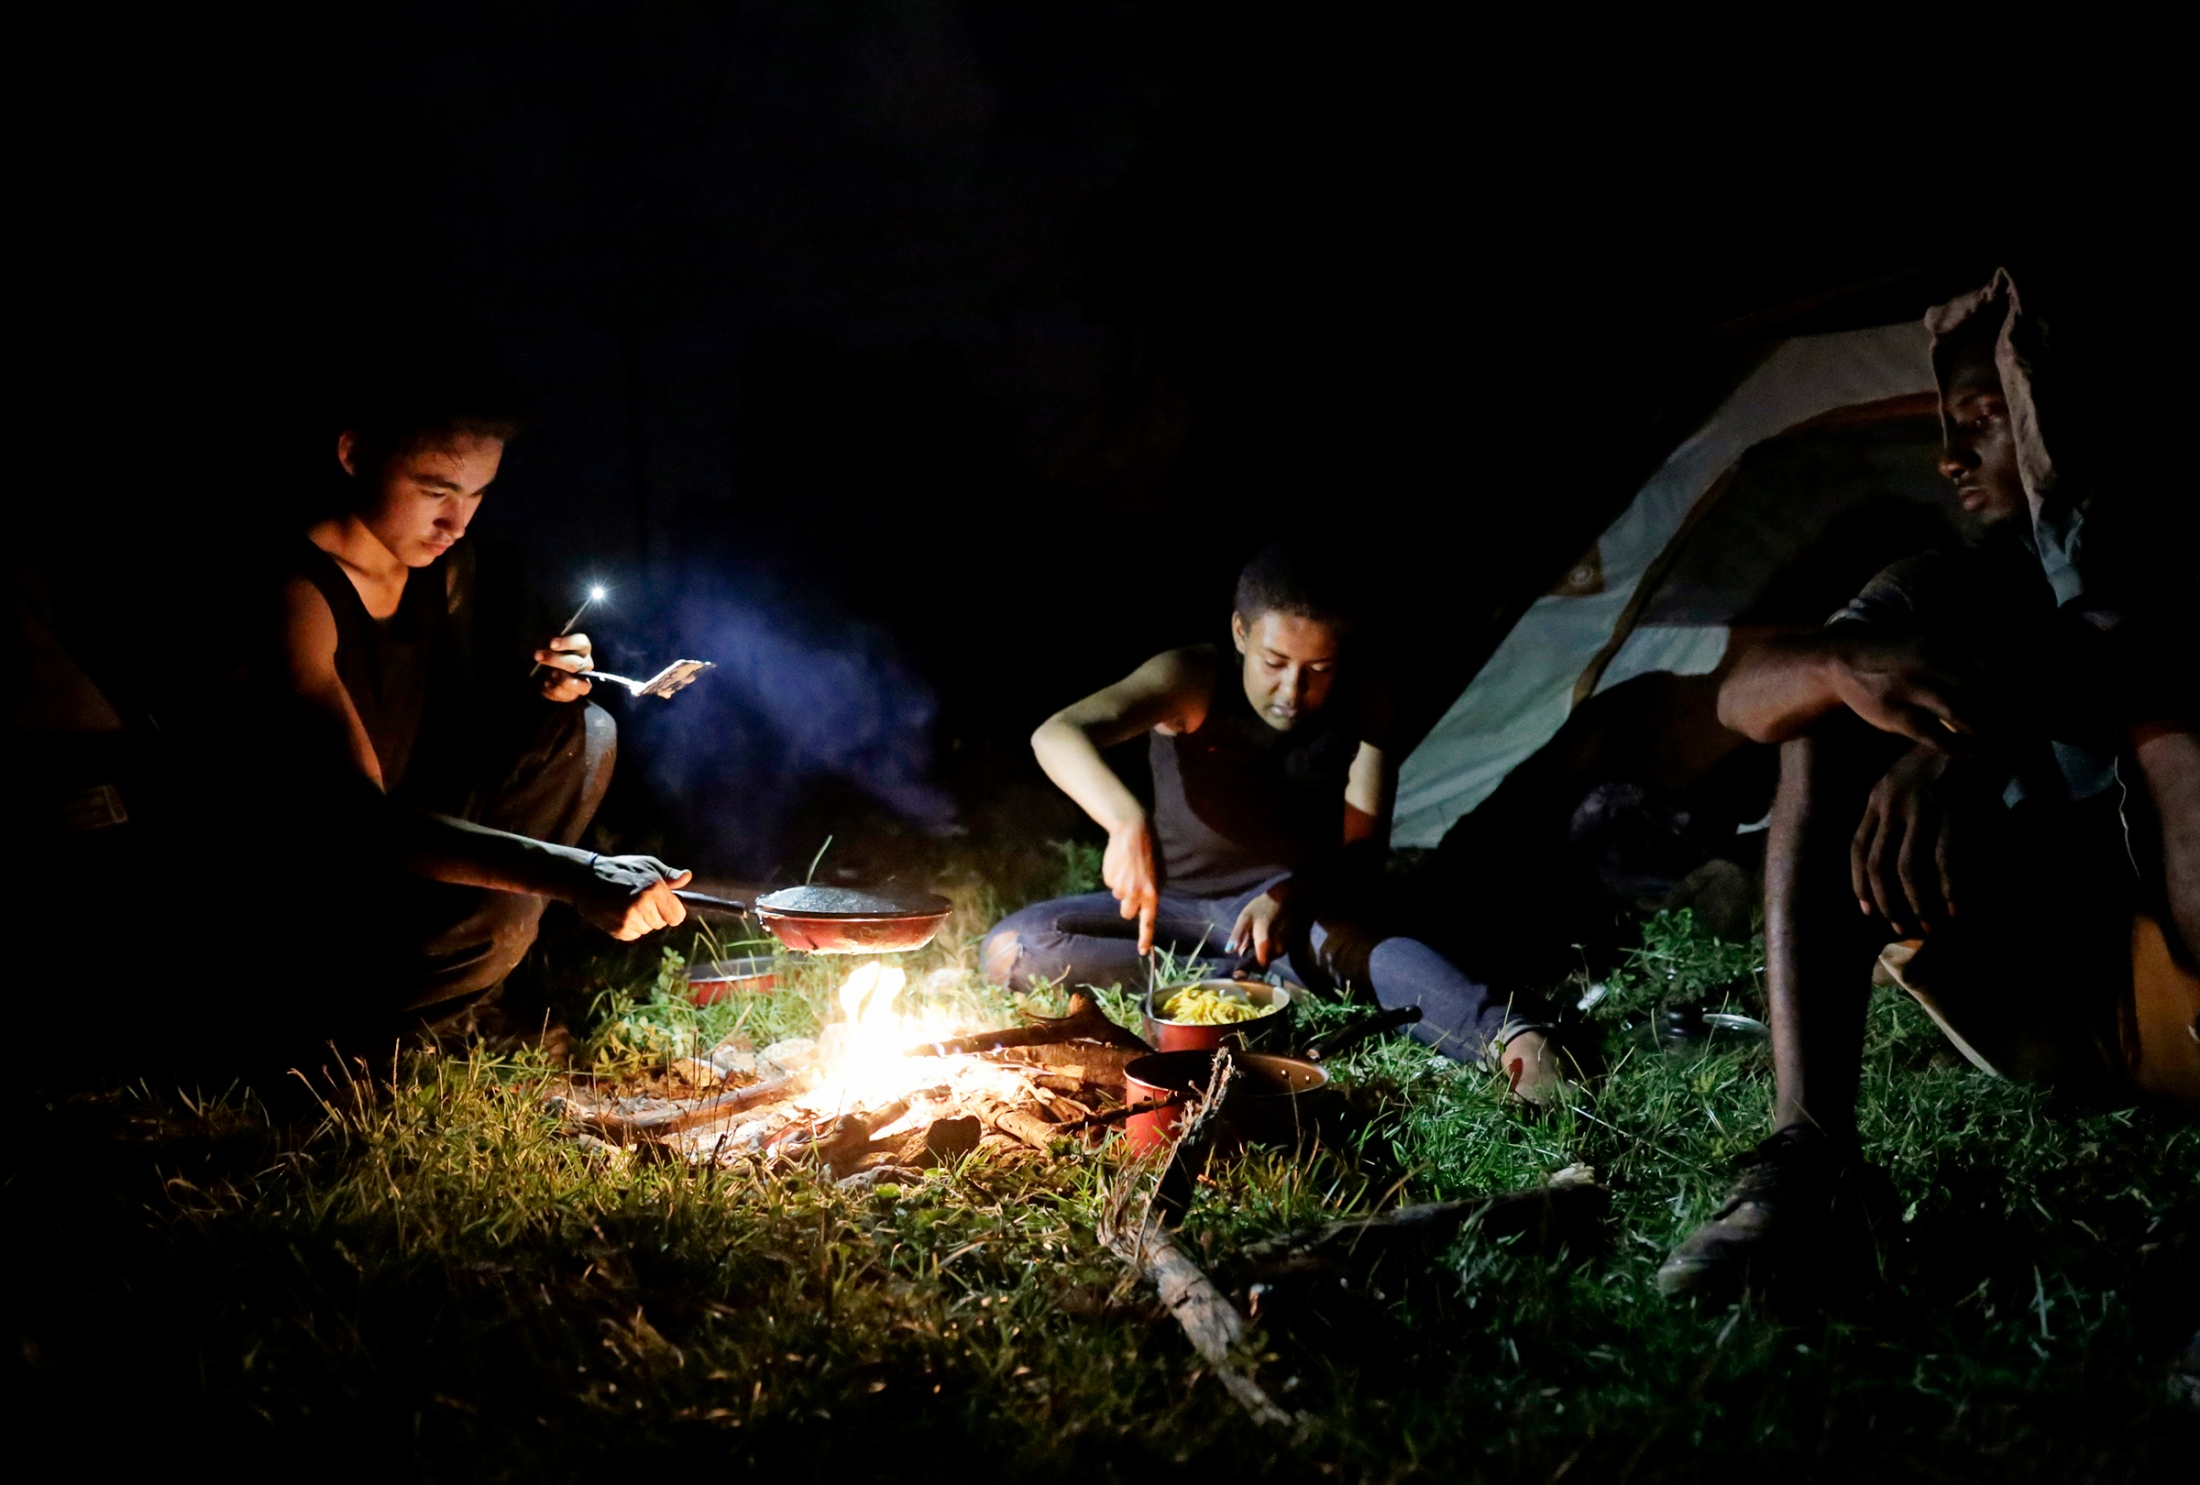 From left: Robert Bulens, Ravyn Frazier and Andy Hall make a dinner of noodles with cream of mushroom soup at their campsite in a clearing hidden off the side of a highway in Tallahassee, Fla, on Sept. 20, 2018.   Hot and saturated with mosquitoes and fire ants, they stay just long enough to set up camp, cook and wash dishes in the stream on the other side of the railroad tracks before heading back into town with plans to return to the campsite to sleep. Usually the group stays the night under shelter with whichever friend happens to have an apartment at the moment. Sleeping at the campsite is a last resort when other plans fall through. Bulens keeps the site a secret so he can moderate who stays there, making sure they are trustworthy.  No strange roommates, no rules, and no evictions. Having attended a culinary program in junior college, Frazier wanted to be in charge of dinner, making sure the others knew she would cook the fettucine al dente so it wouldn't be mushy.